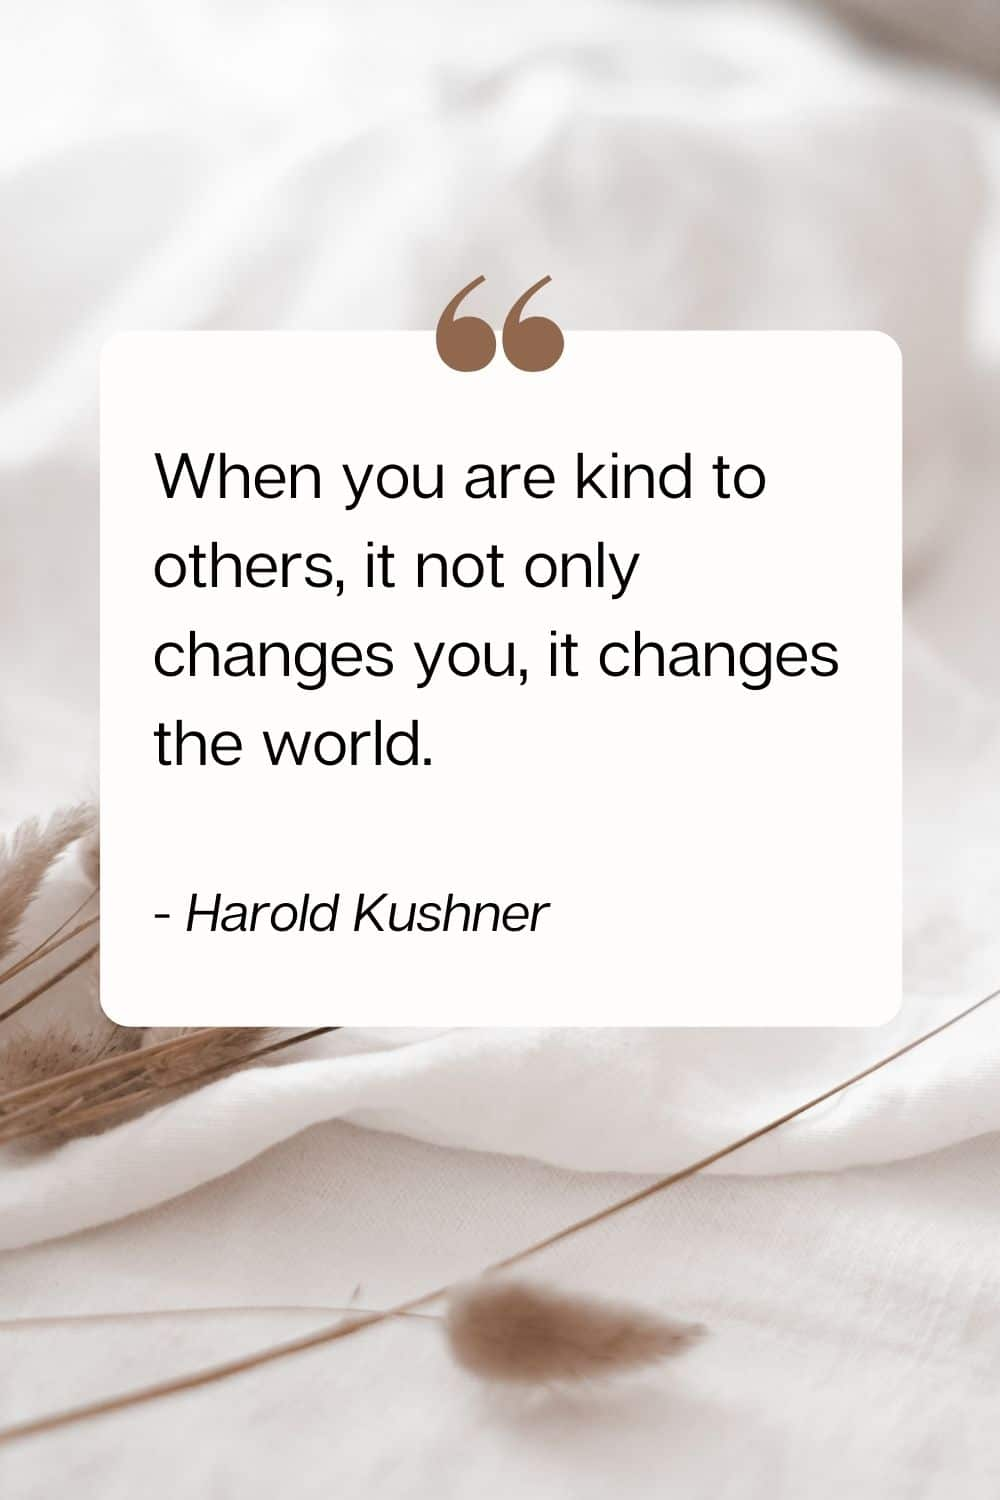 quote - When you are kind to others, it not only changes you, it changes the world. - Harold Kushner